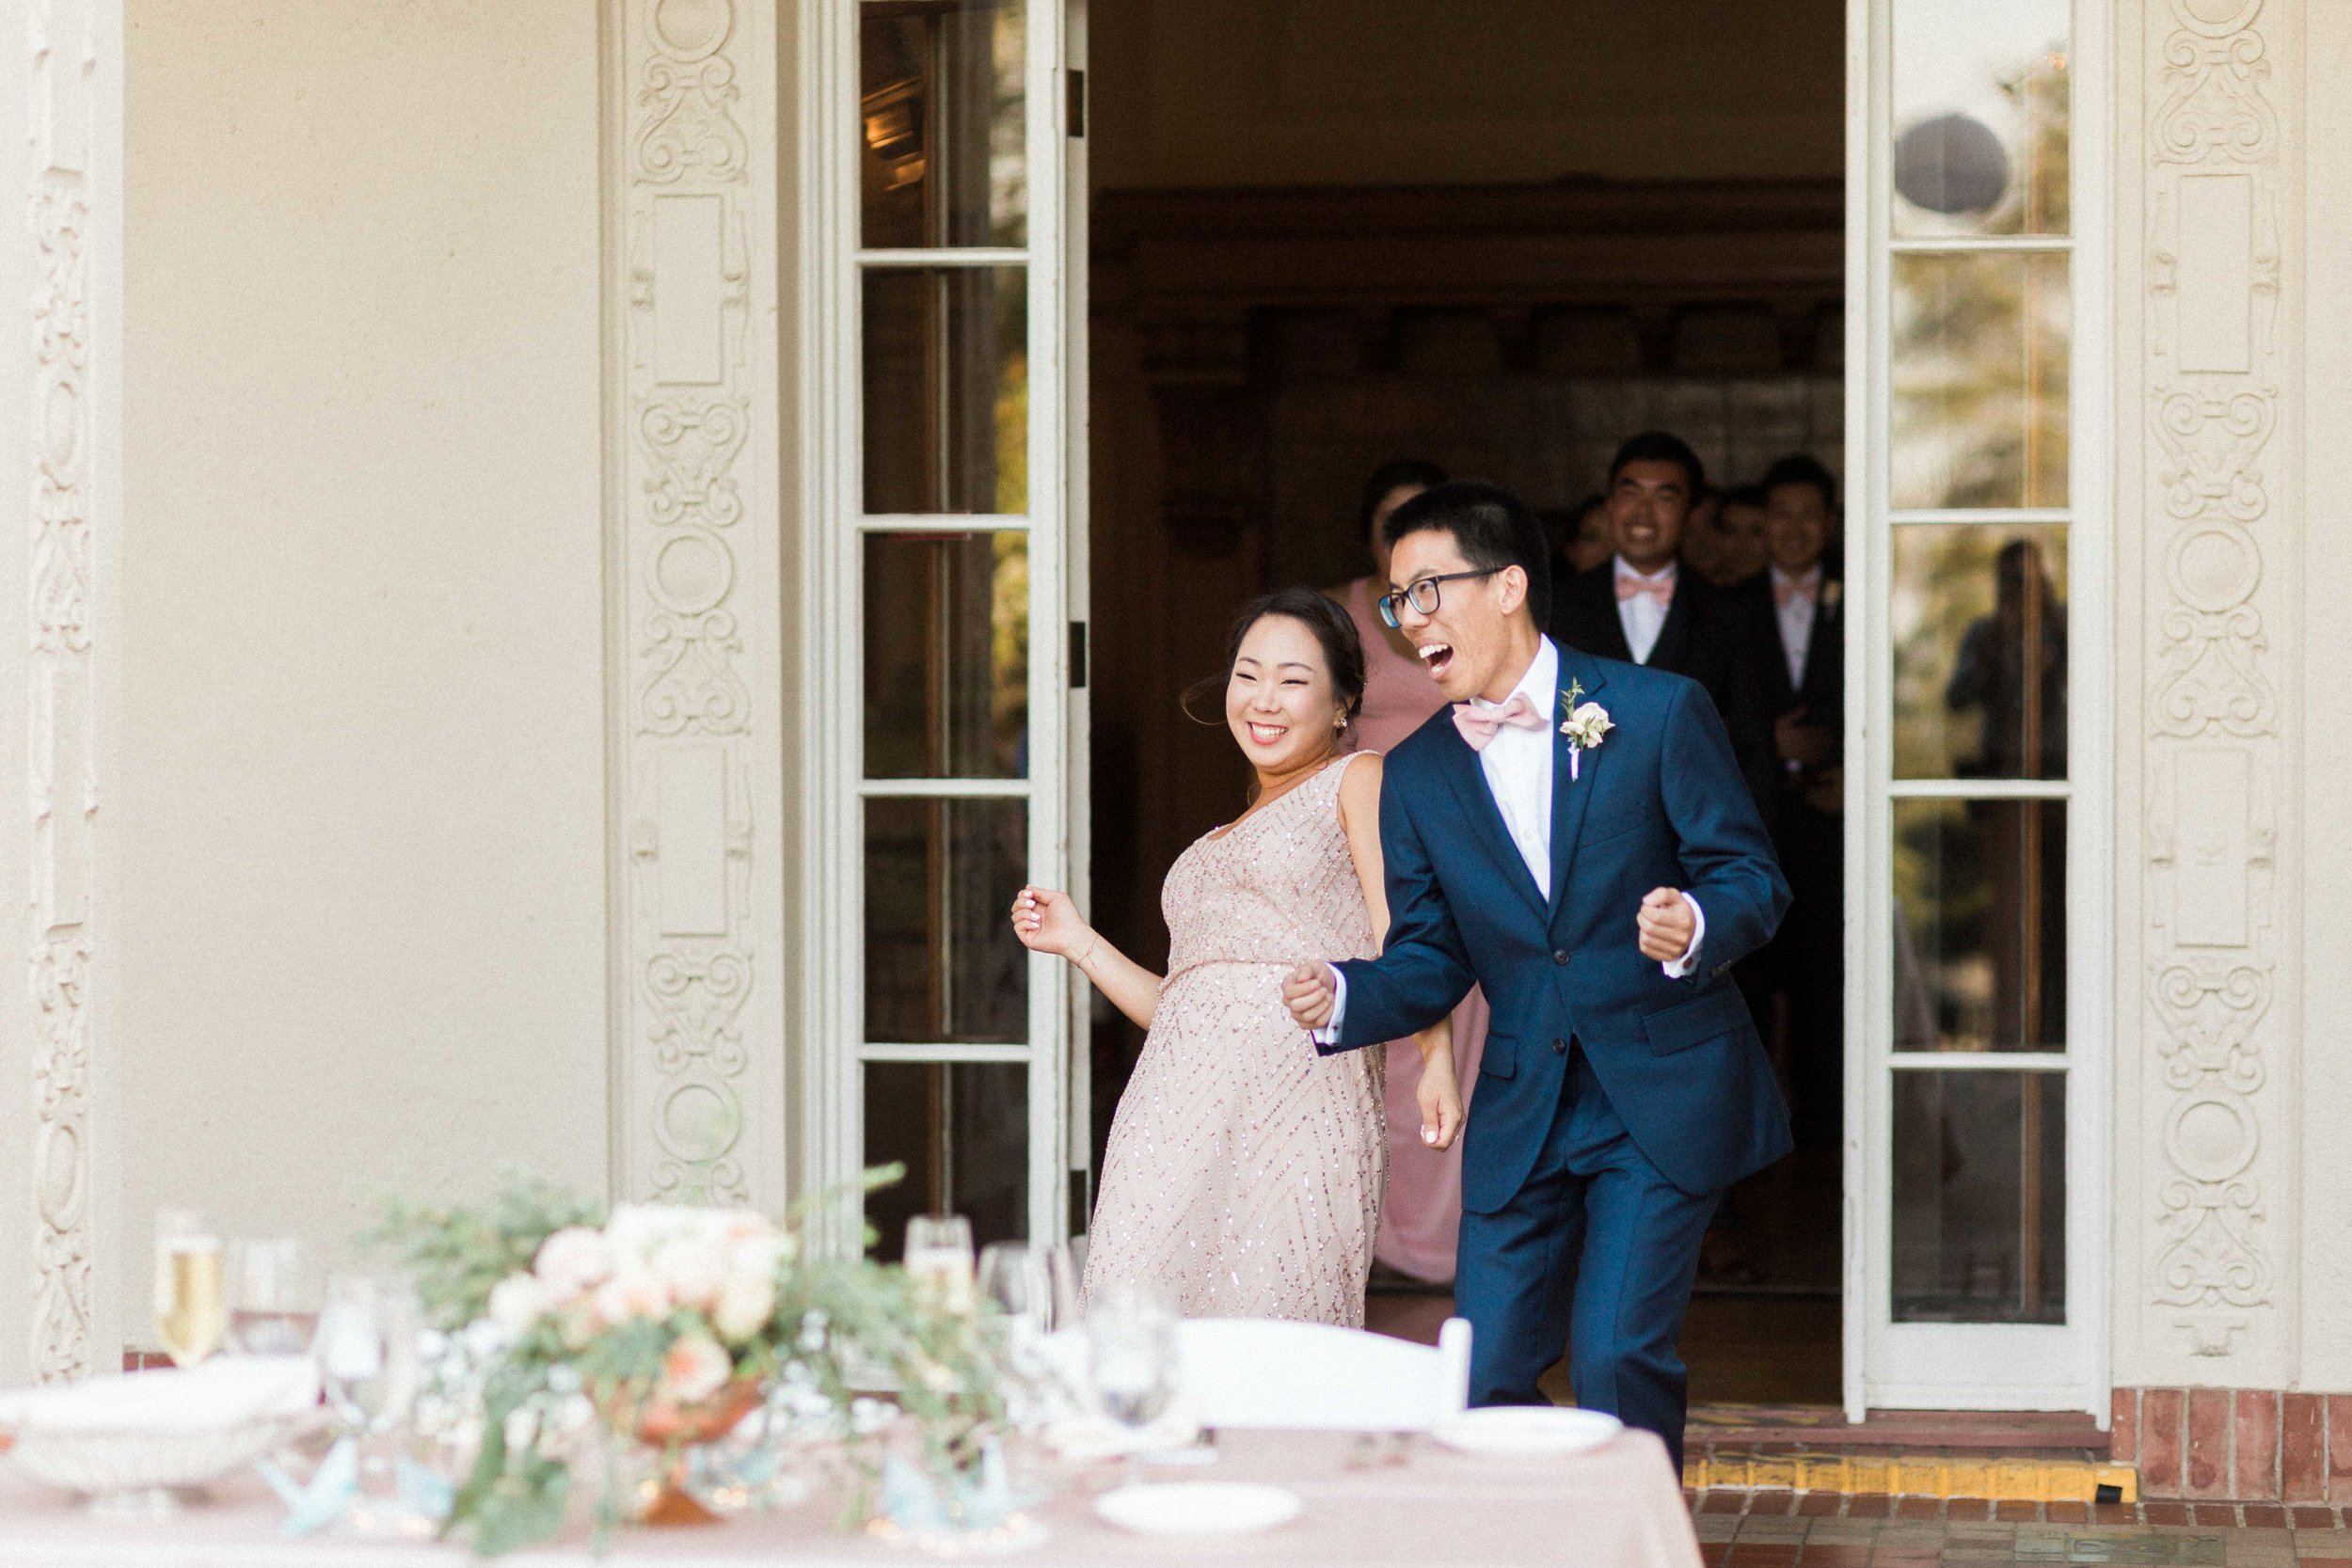 Villa_Montalvo_Wedding_Photographer_Videographer_San_Francisco155.jpg